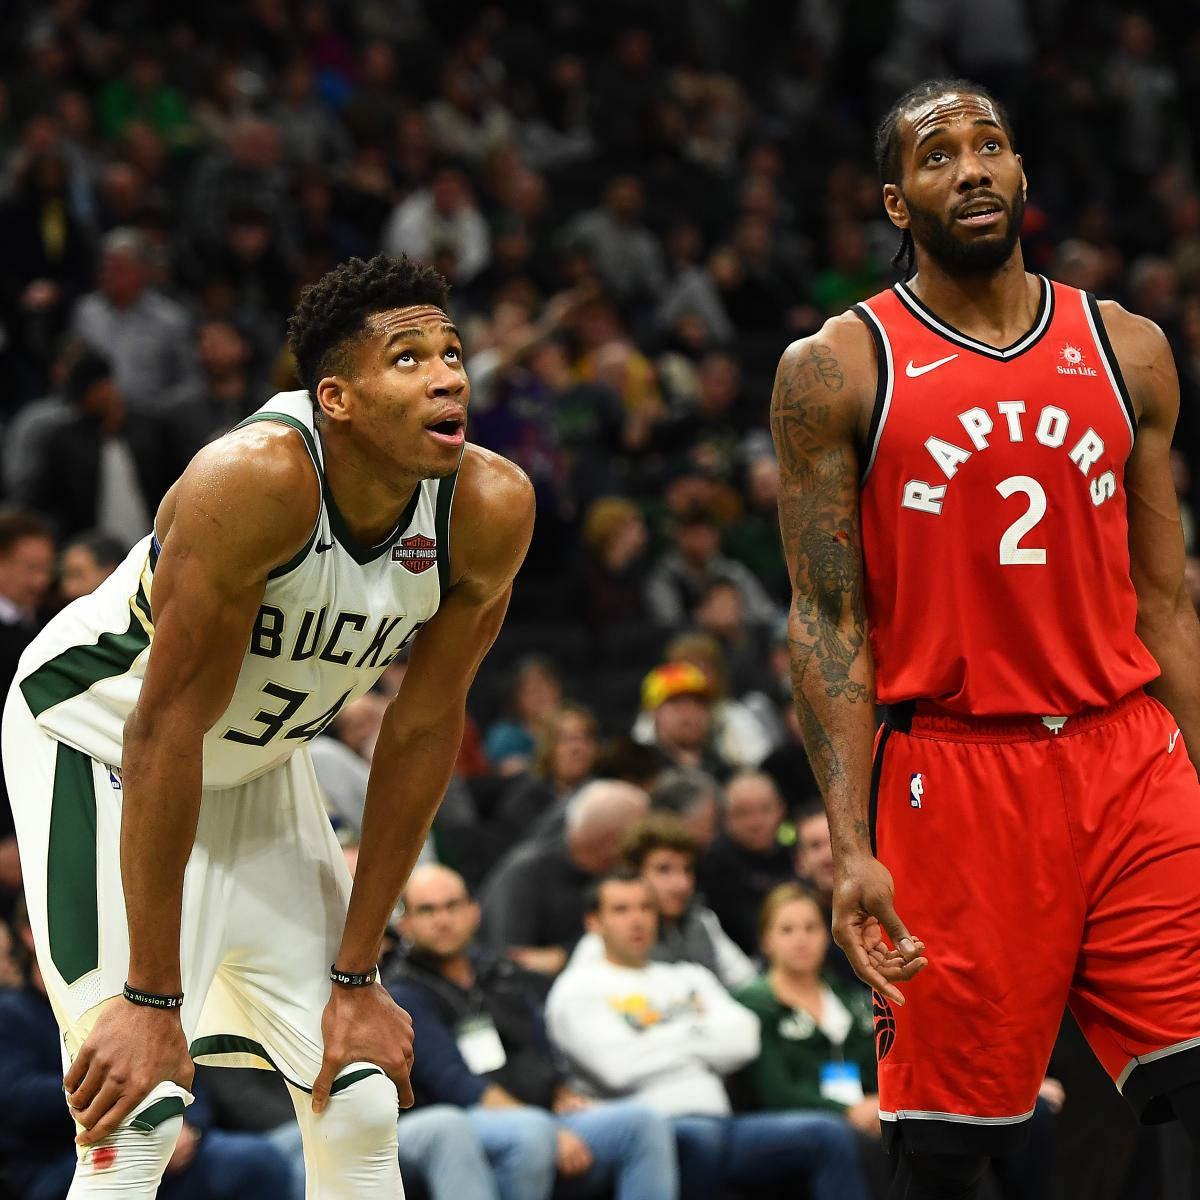 bucks vs raptors - photo #12